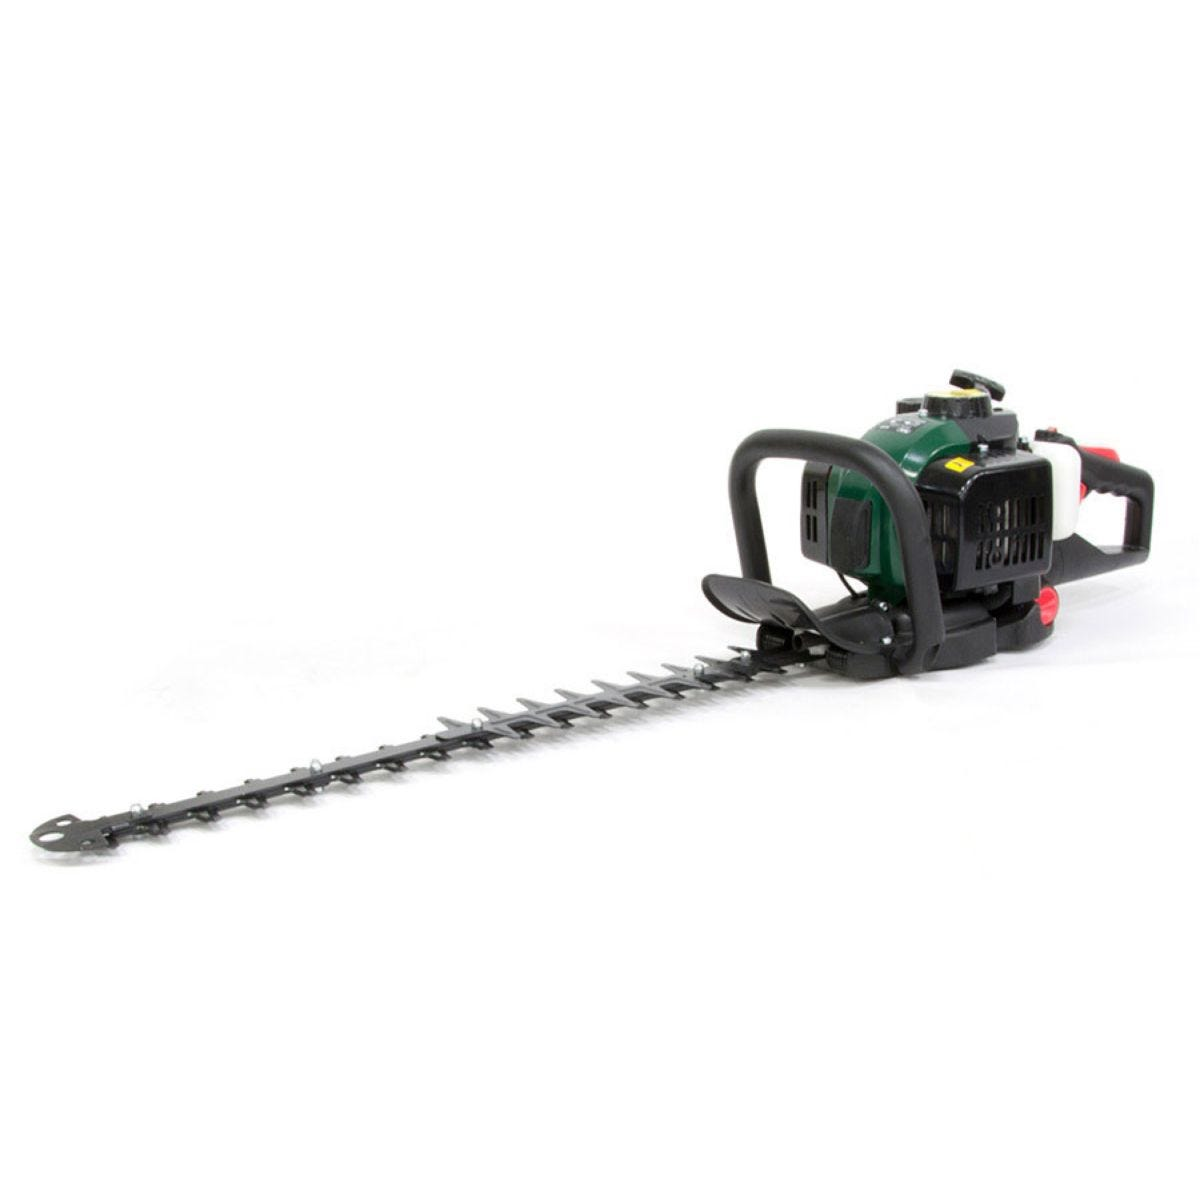 Webb HC600 26cc 56cm Double-Sided Petrol Hedge Trimmer